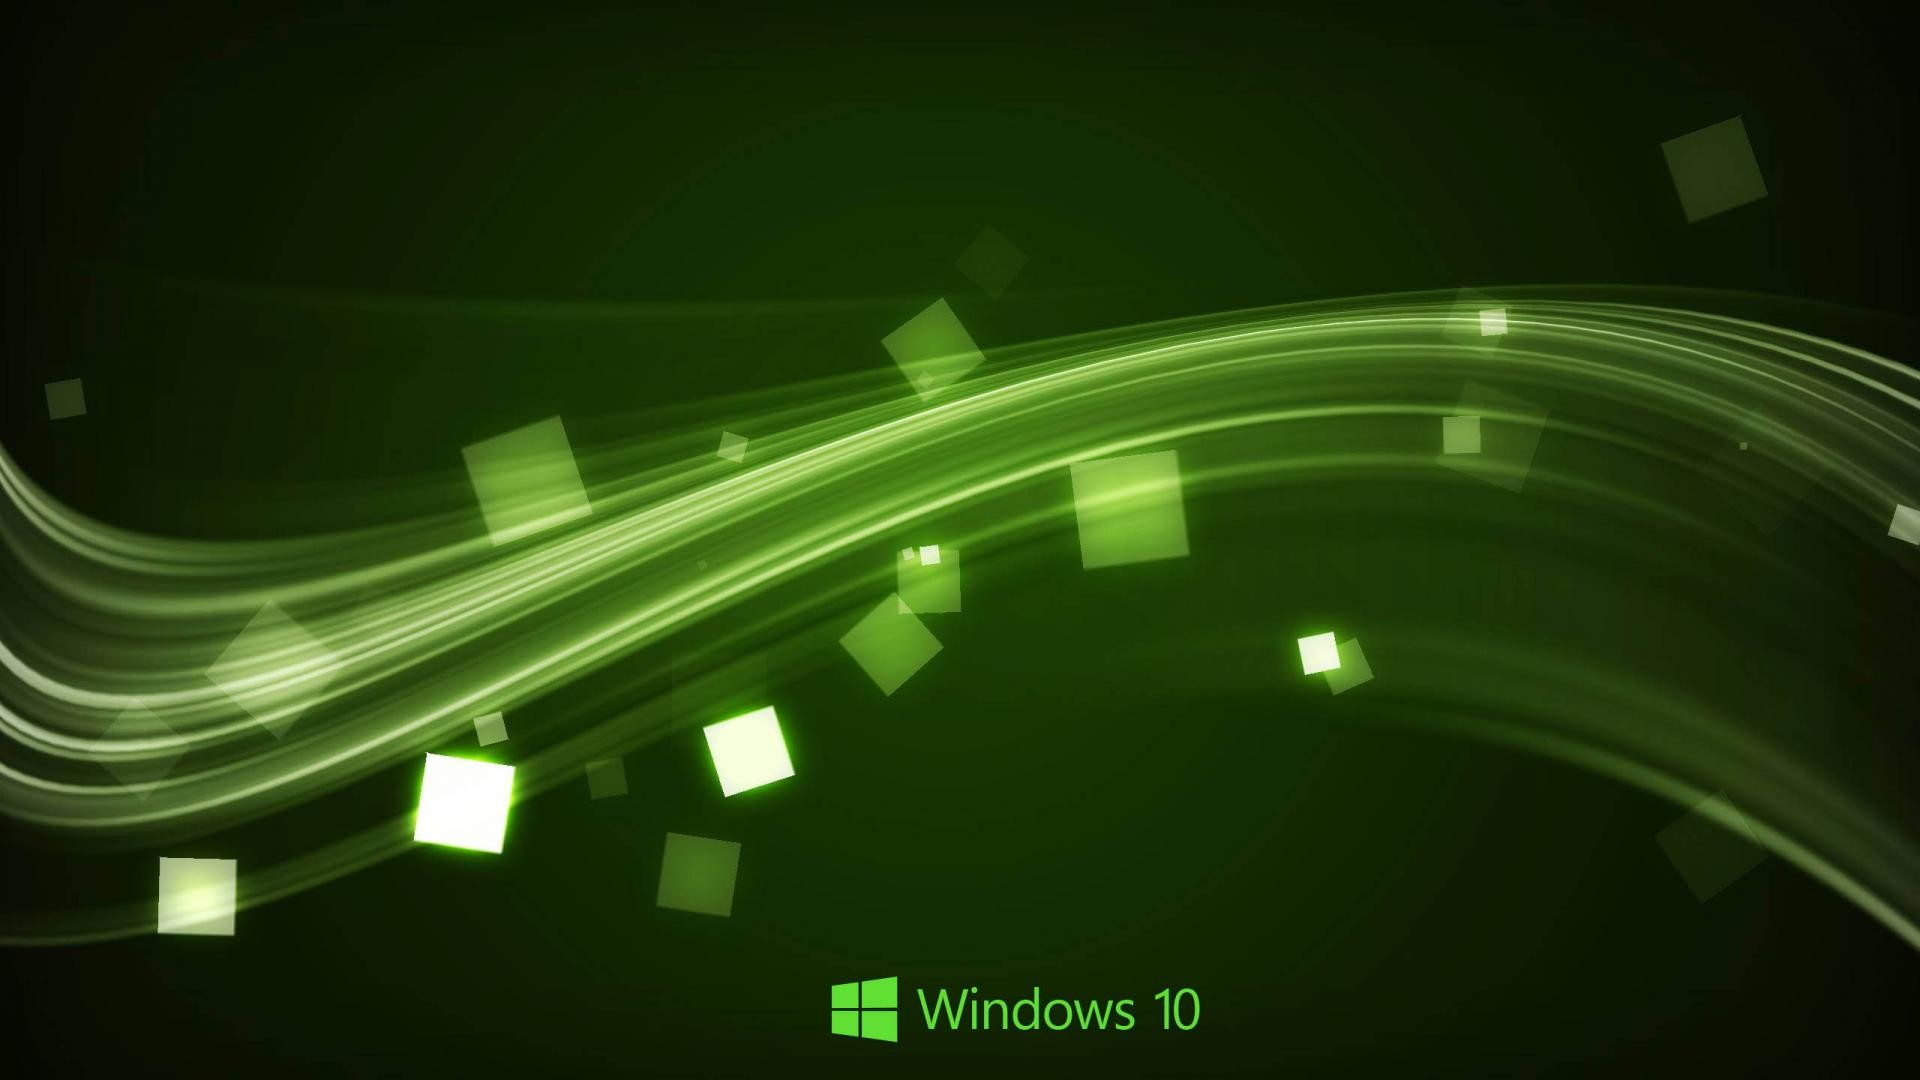 1920x1080 Windows 10 Wallpaper in Abstract Green Waves | HD Wallpapers for Free